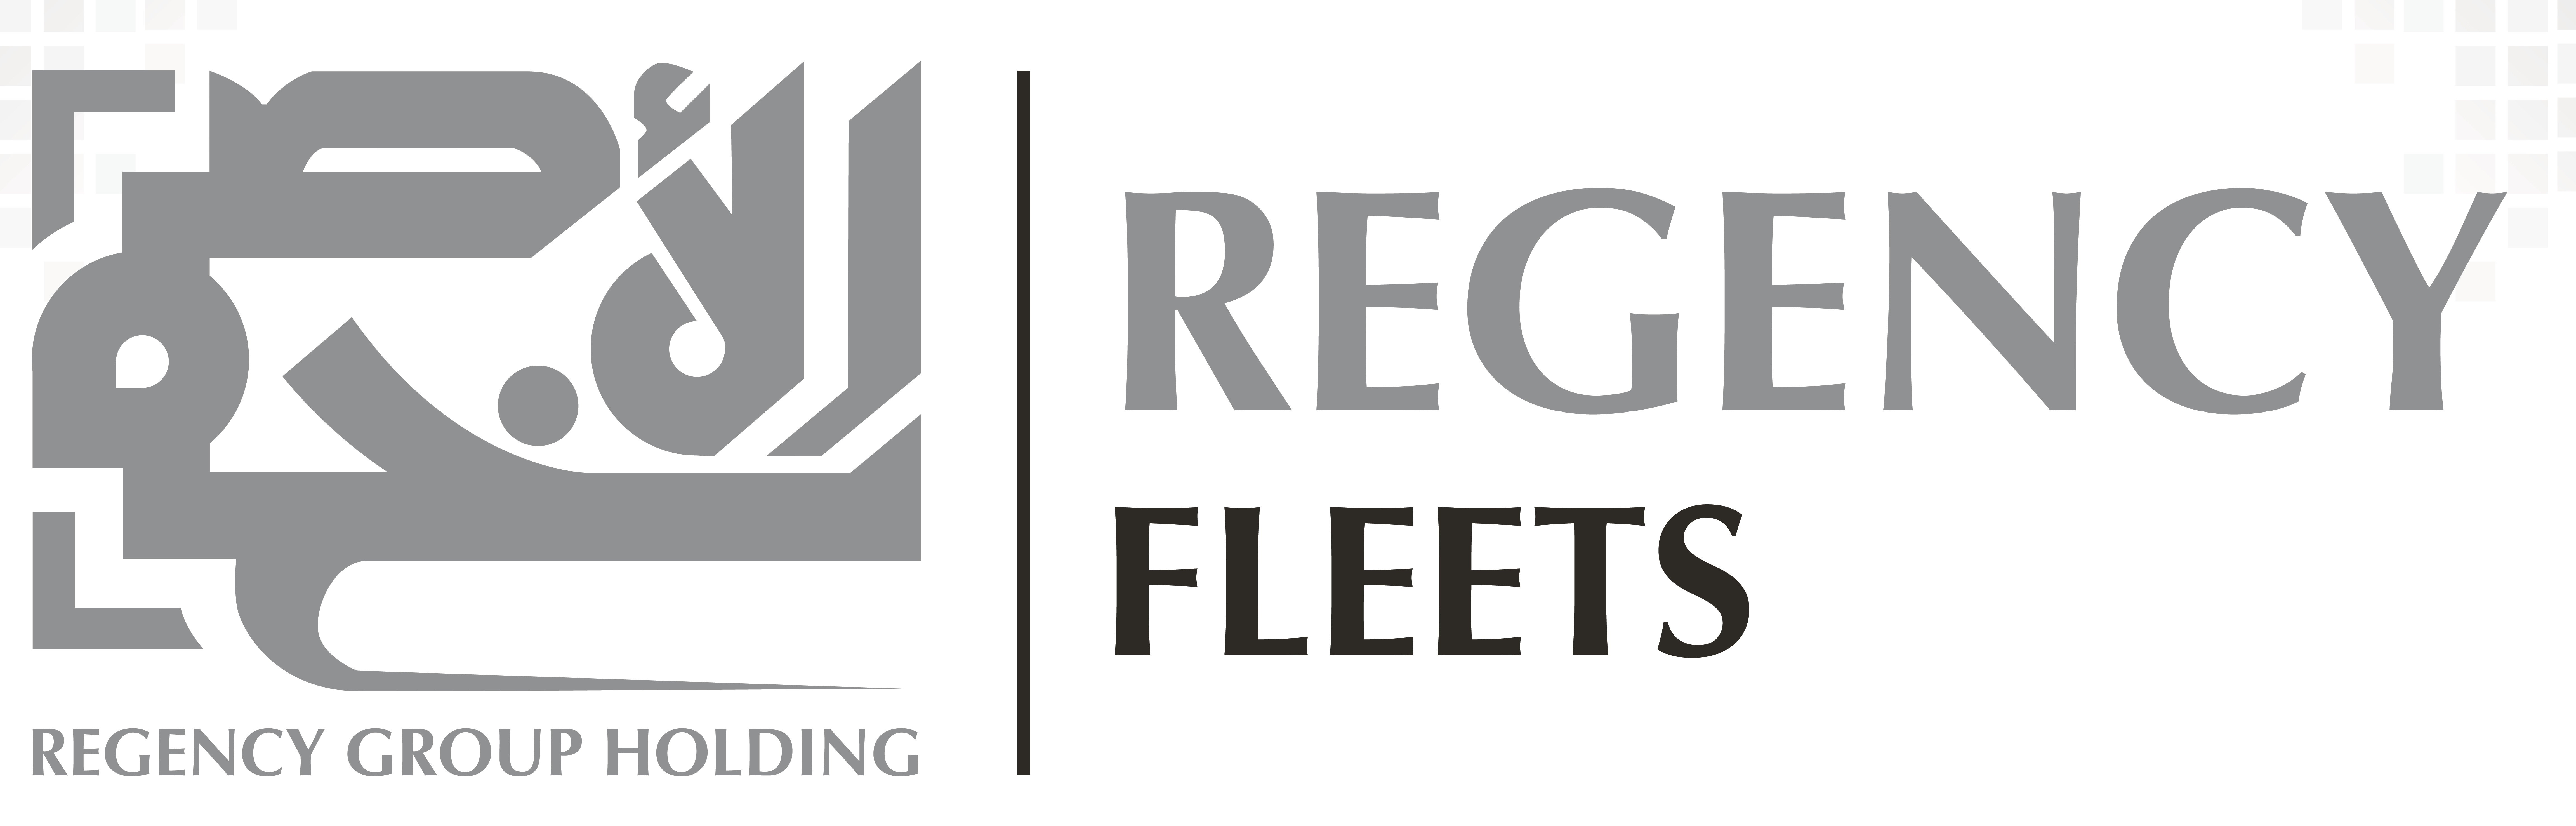 Regency Fleets Qatar main photo.